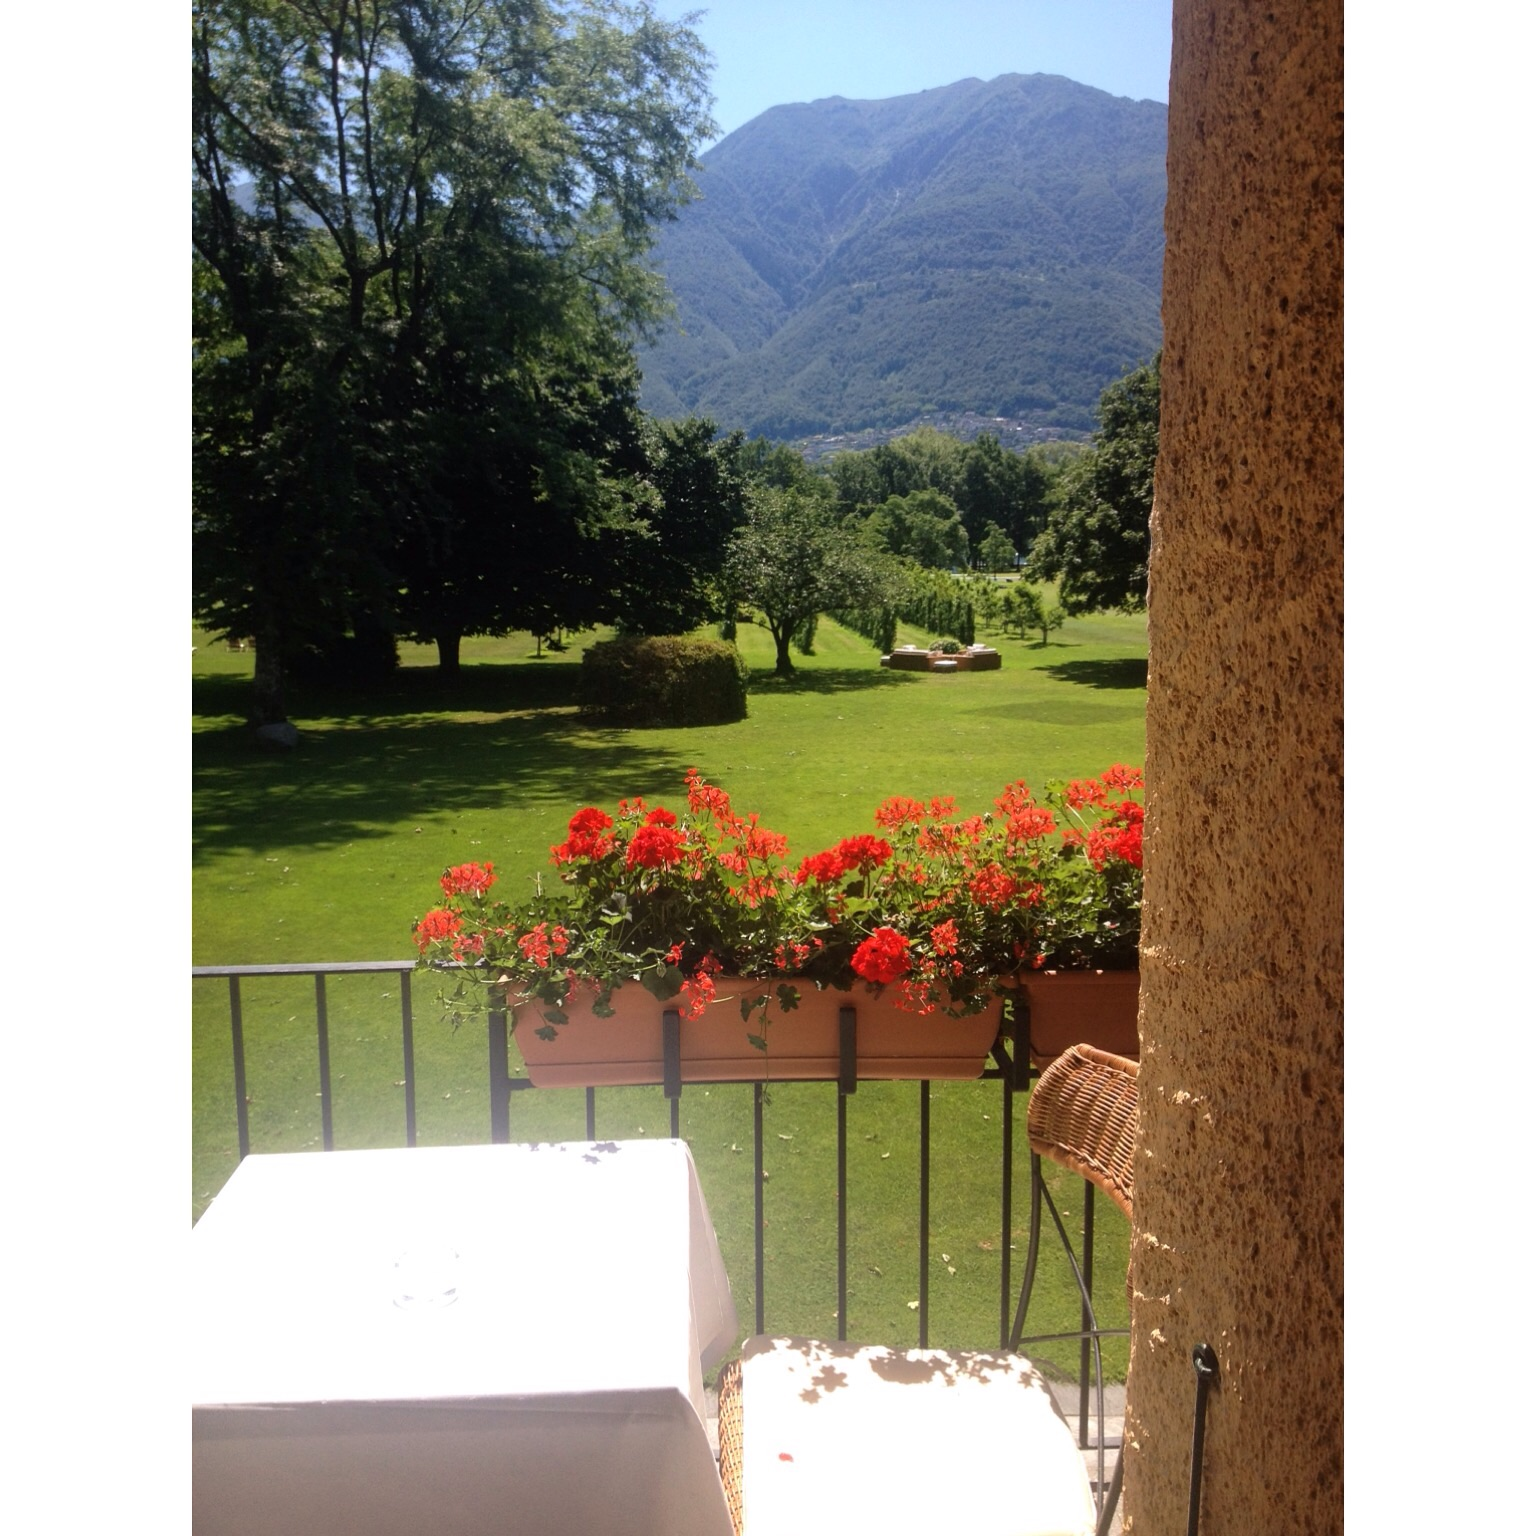 The view from the bed at Hotel Castello Del Sole